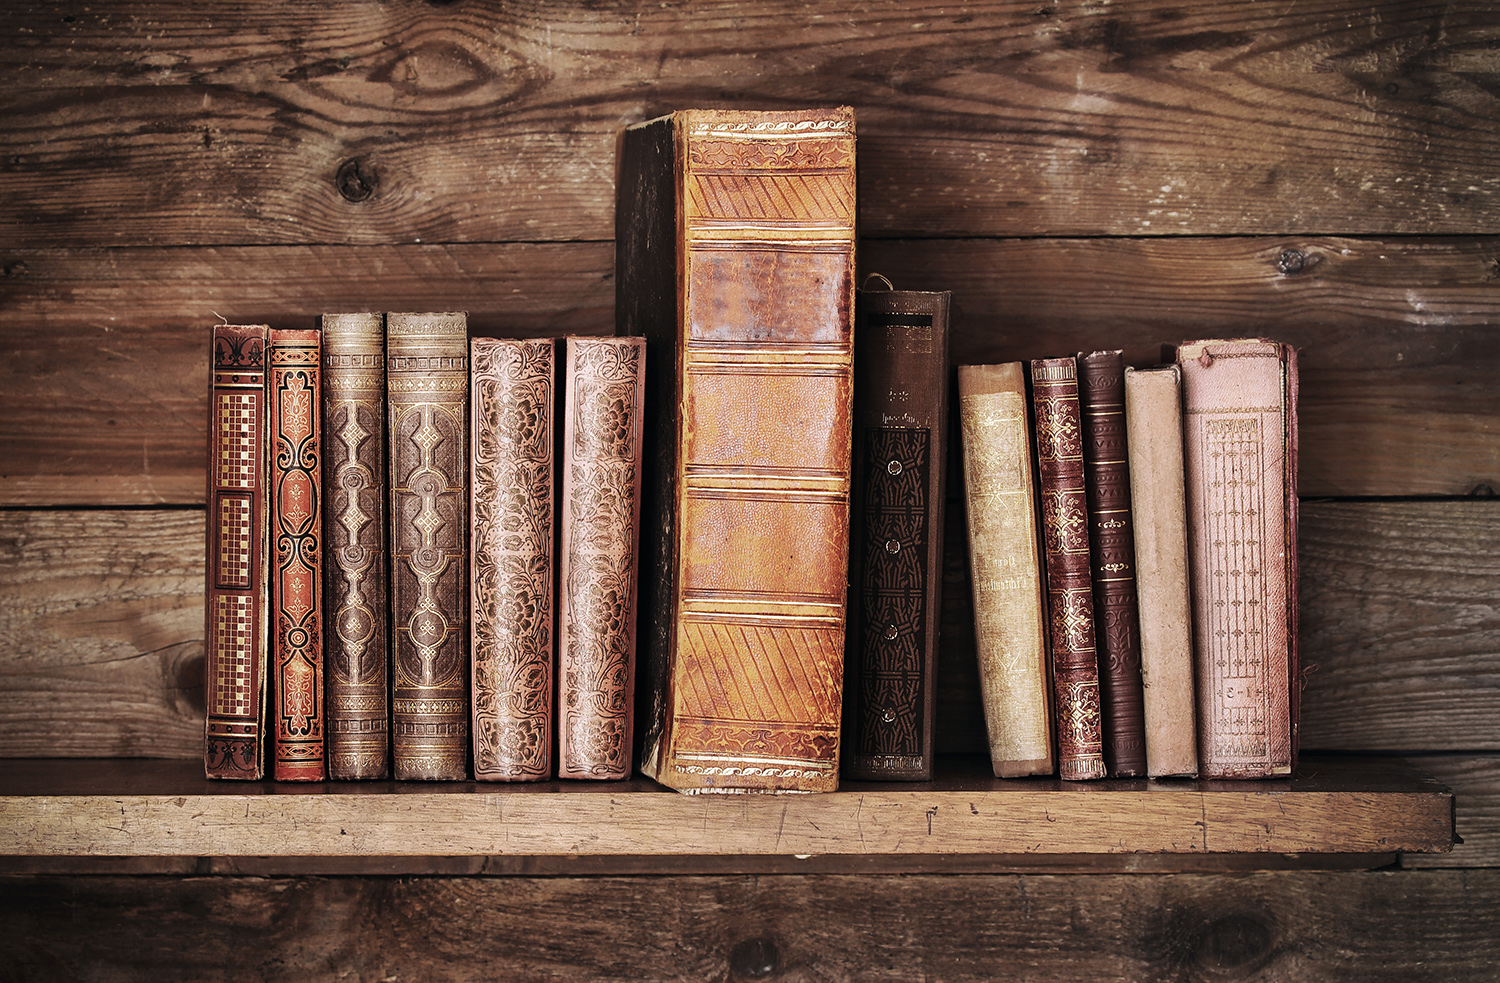 ch_books_squarespace.jpg?format=1500w